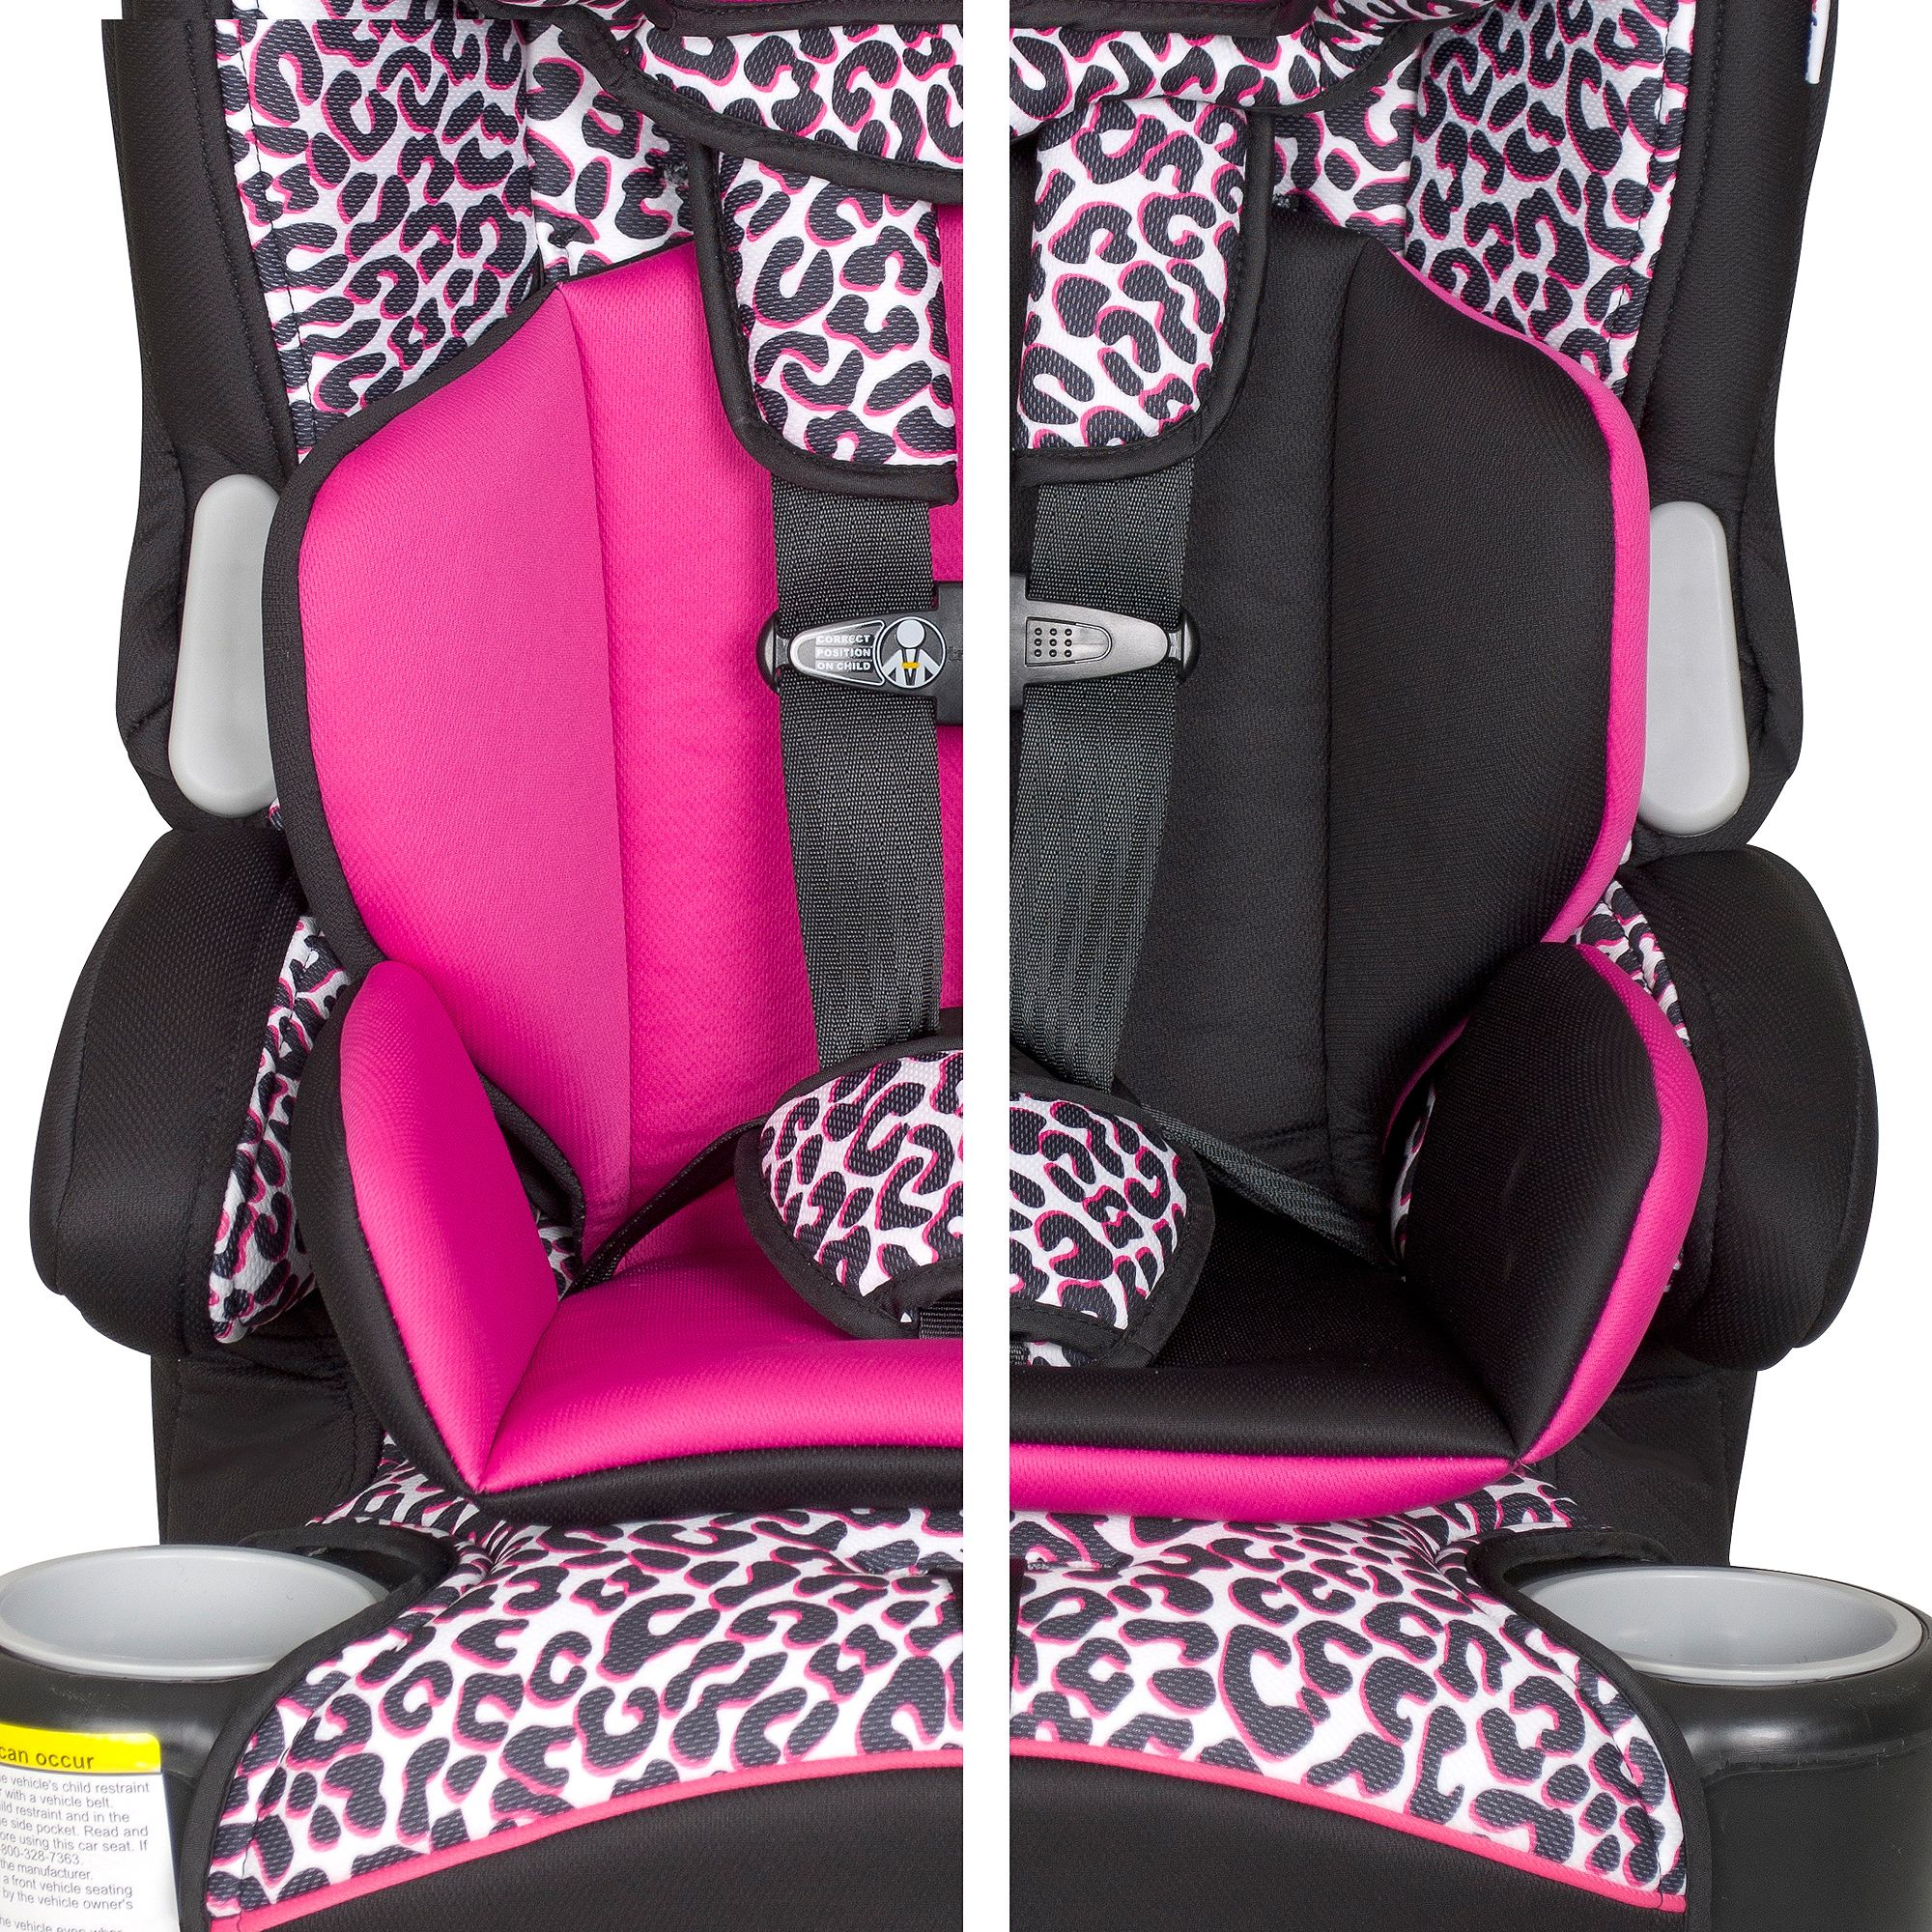 Baby Trend Hybrid LX 3-in-1 Harness Booster Car Seat, Jane - Walmart.com